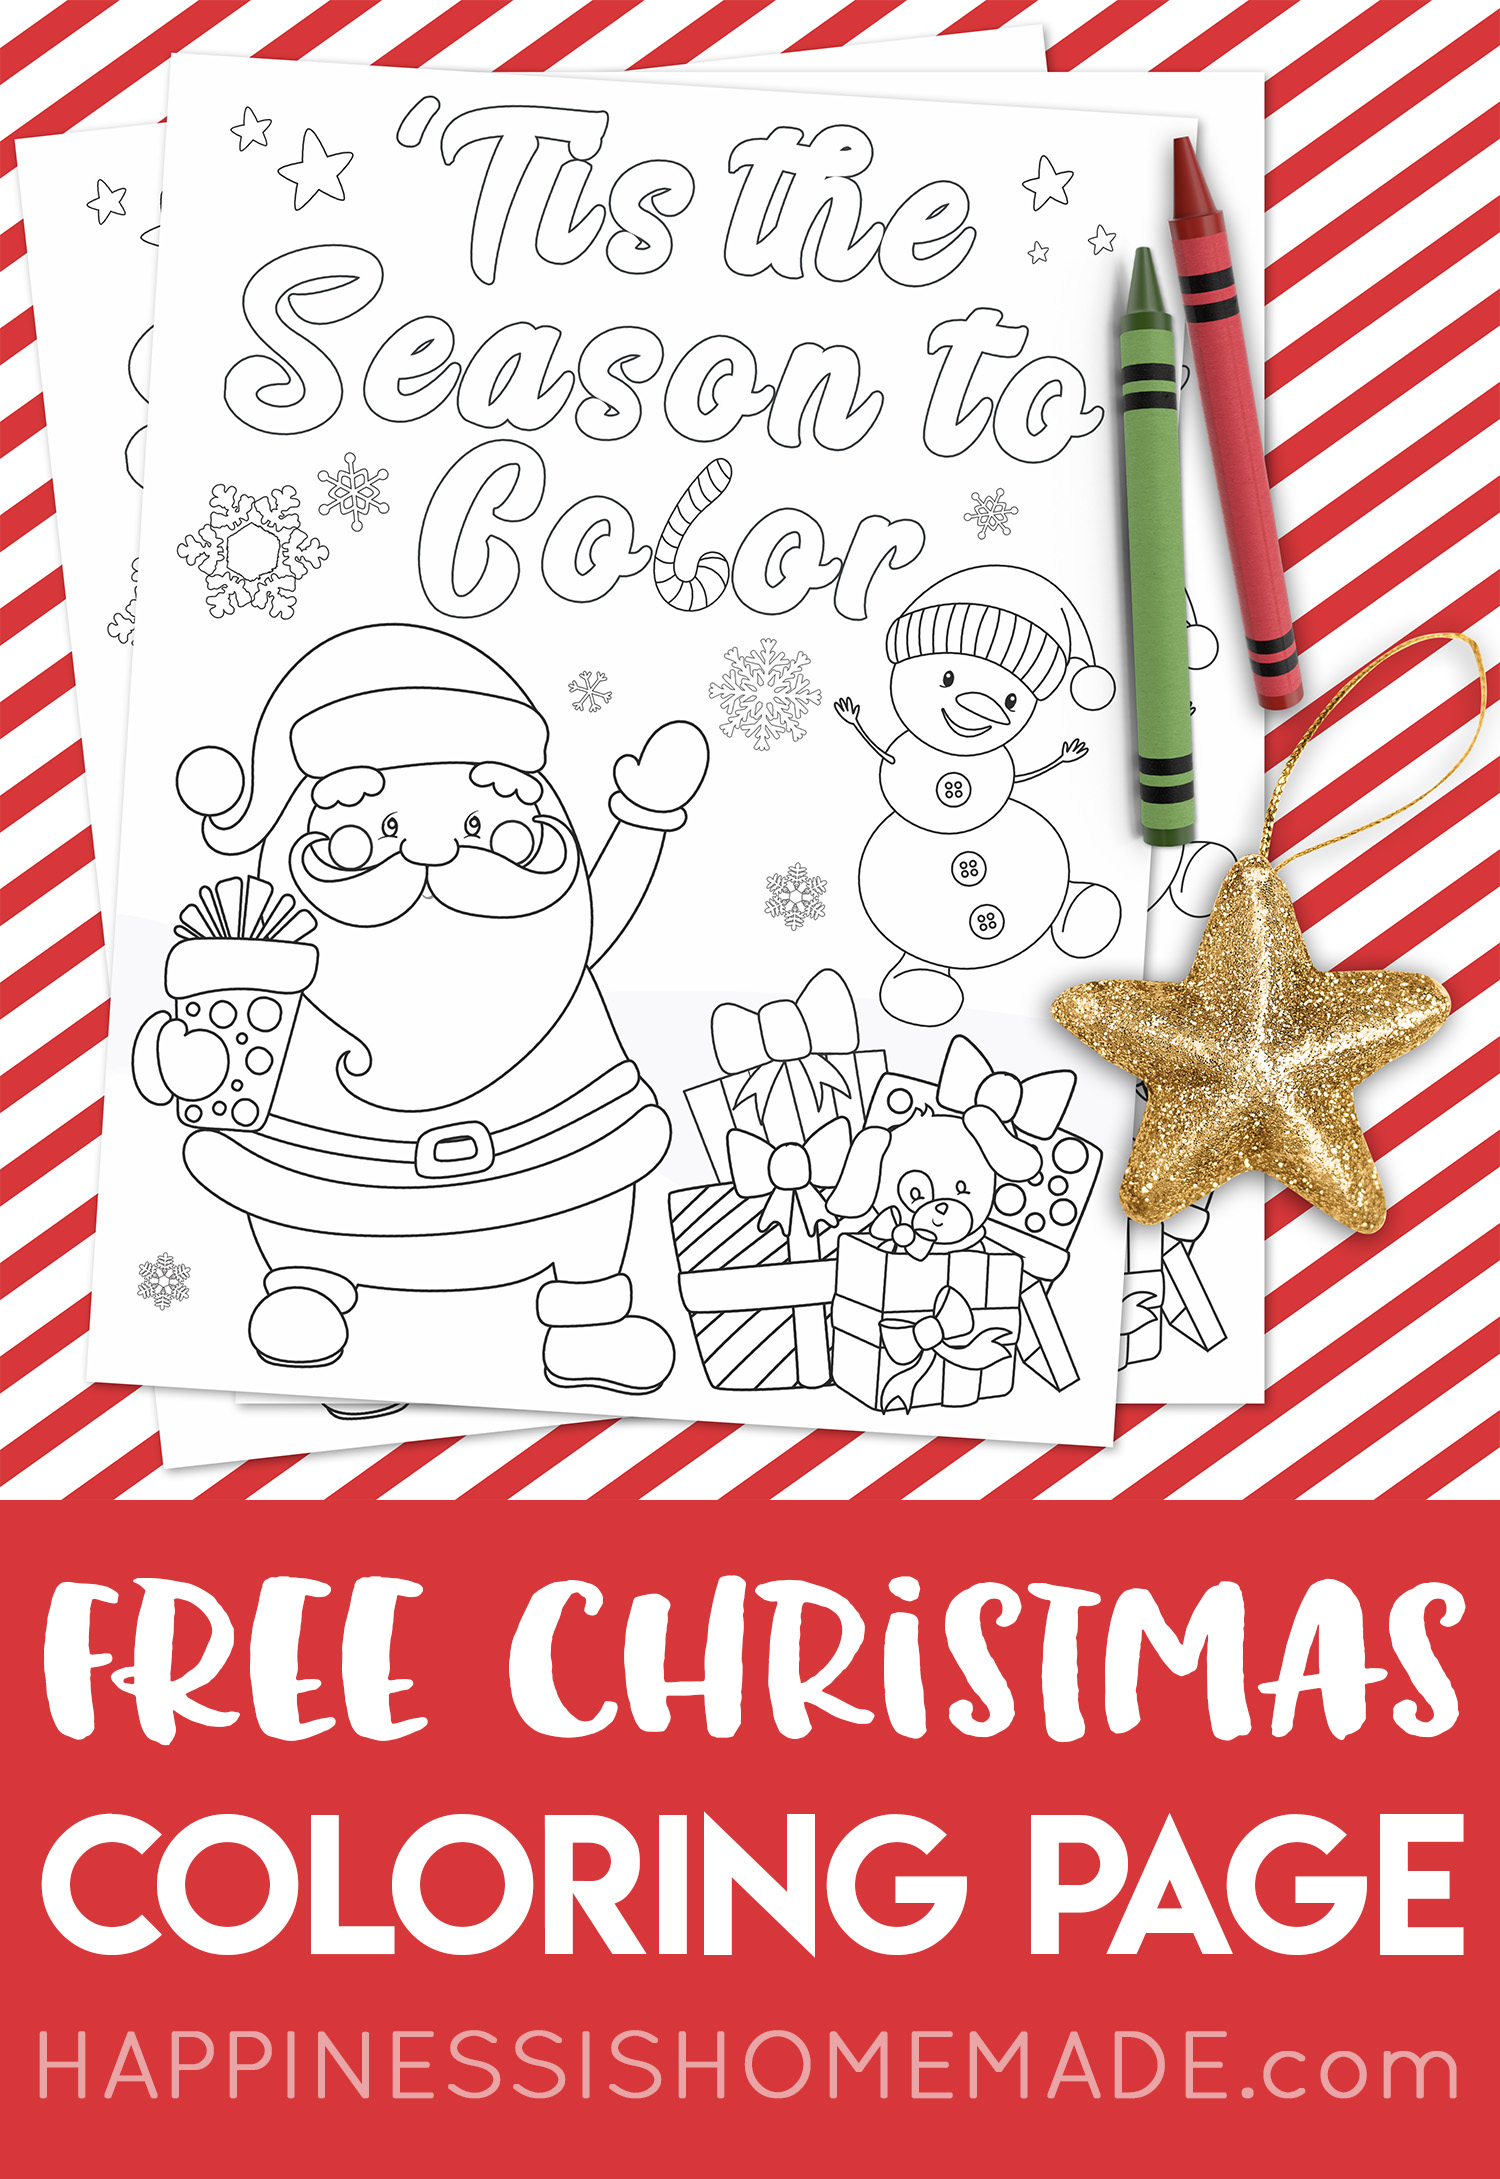 FREE Christmas Coloring Page - 'Tis the Season to Color ...